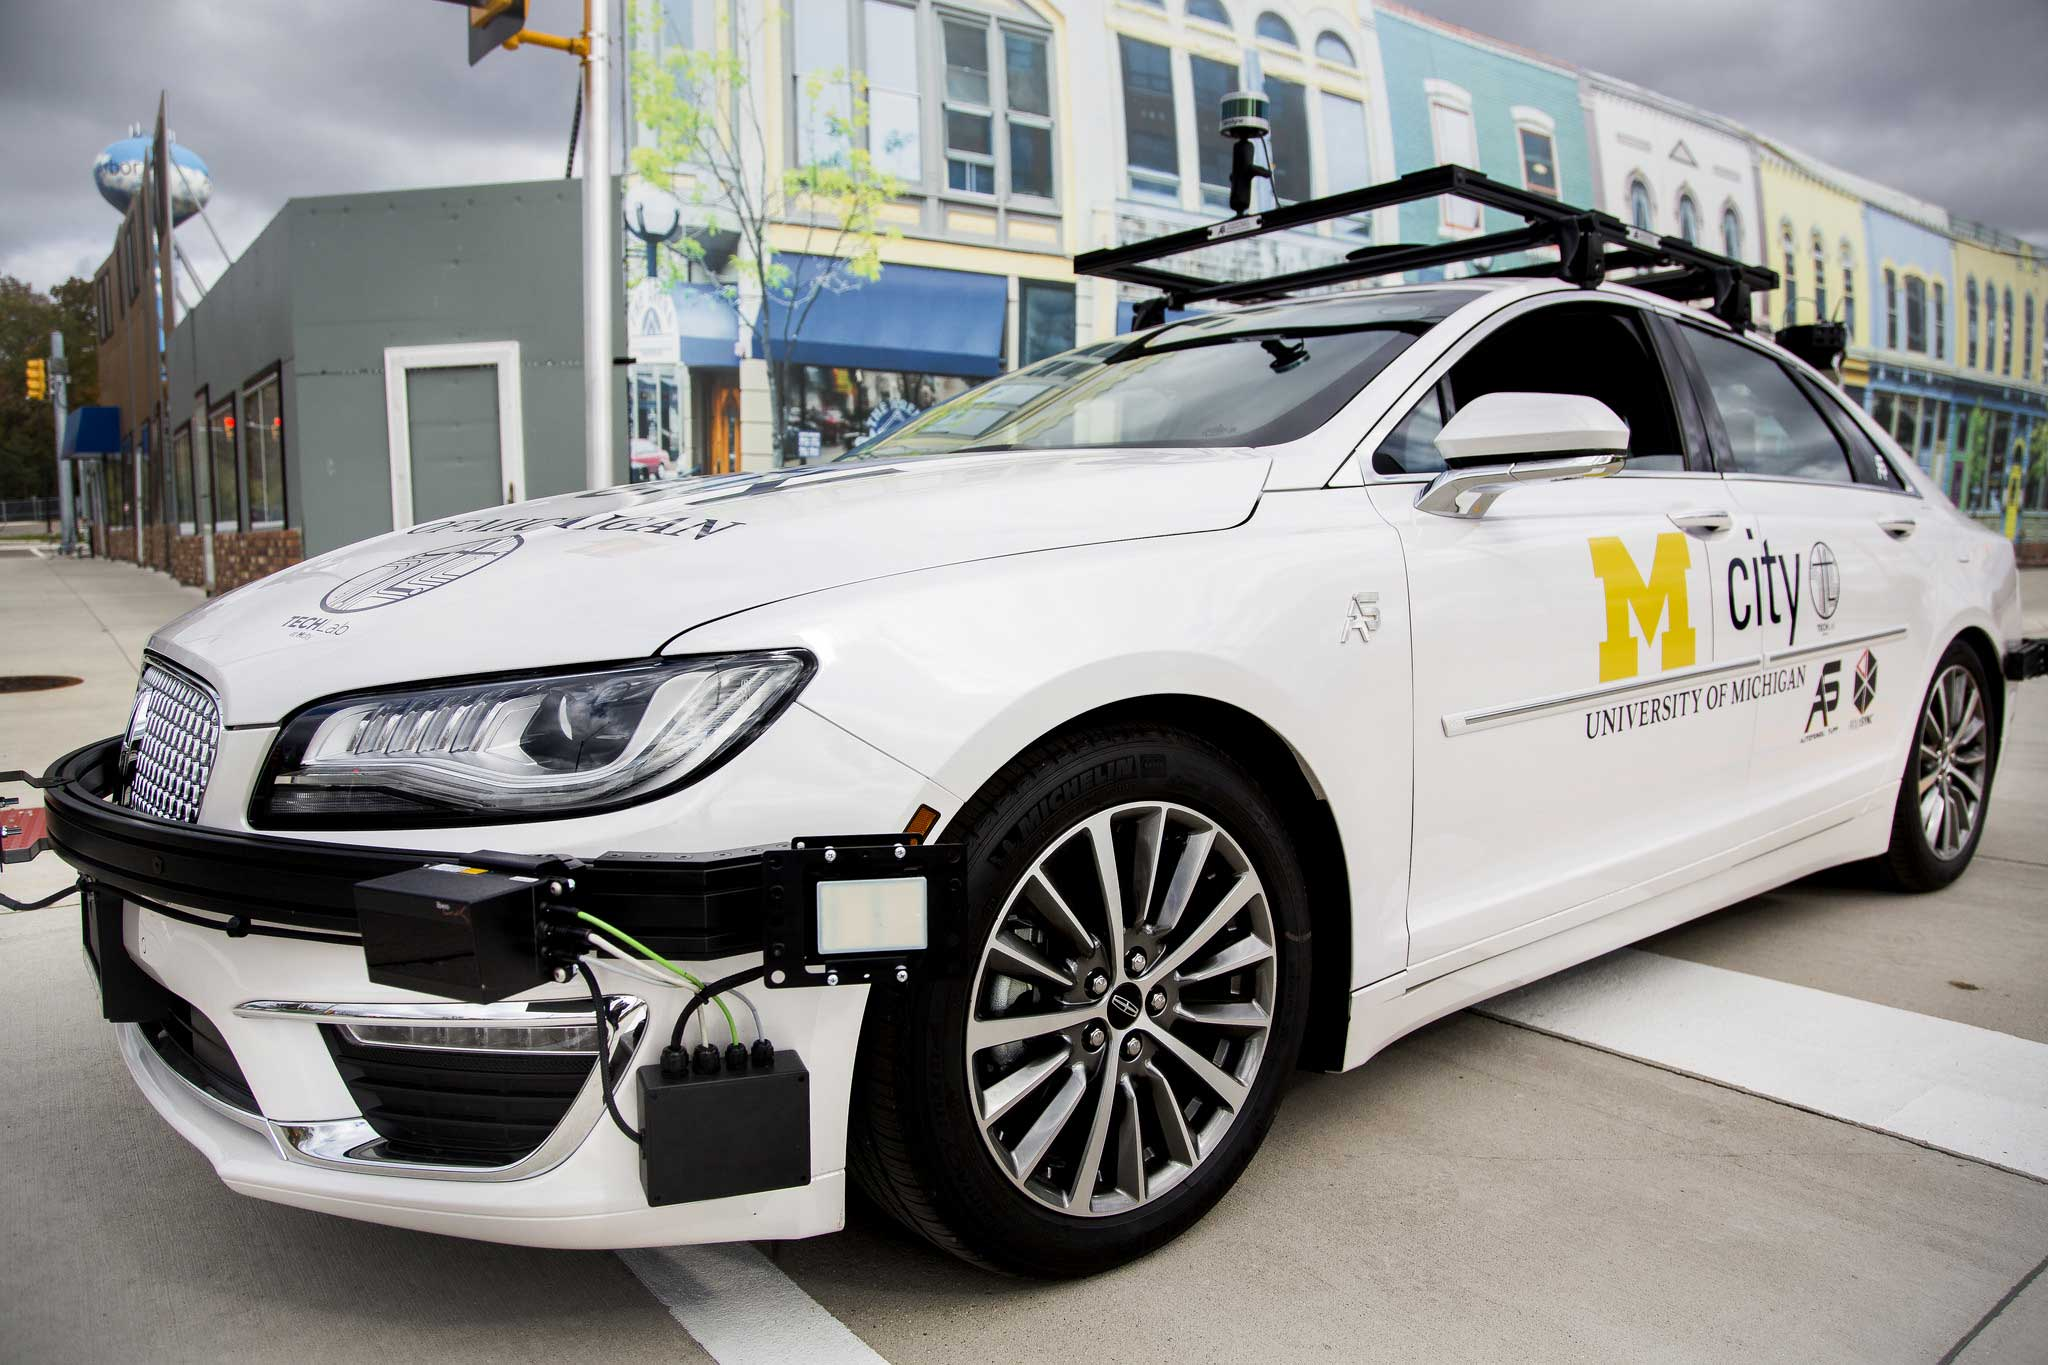 This Lincoln MKZ is an open connected and automated vehicle research platform, or open CAV, at the University of Michigan. It is an open testbed for academic and industry researchers to rapidly test self-driving and connected vehicle technologies at Mcity, a world-class proving ground for advanced mobility vehicles operated by U-M's Mobility Transformation Center. The Lincoln will be joined by two Kia Souls equipped as open CAVs in coming months. Image credit: Joseph Xu, Michigan Engineering